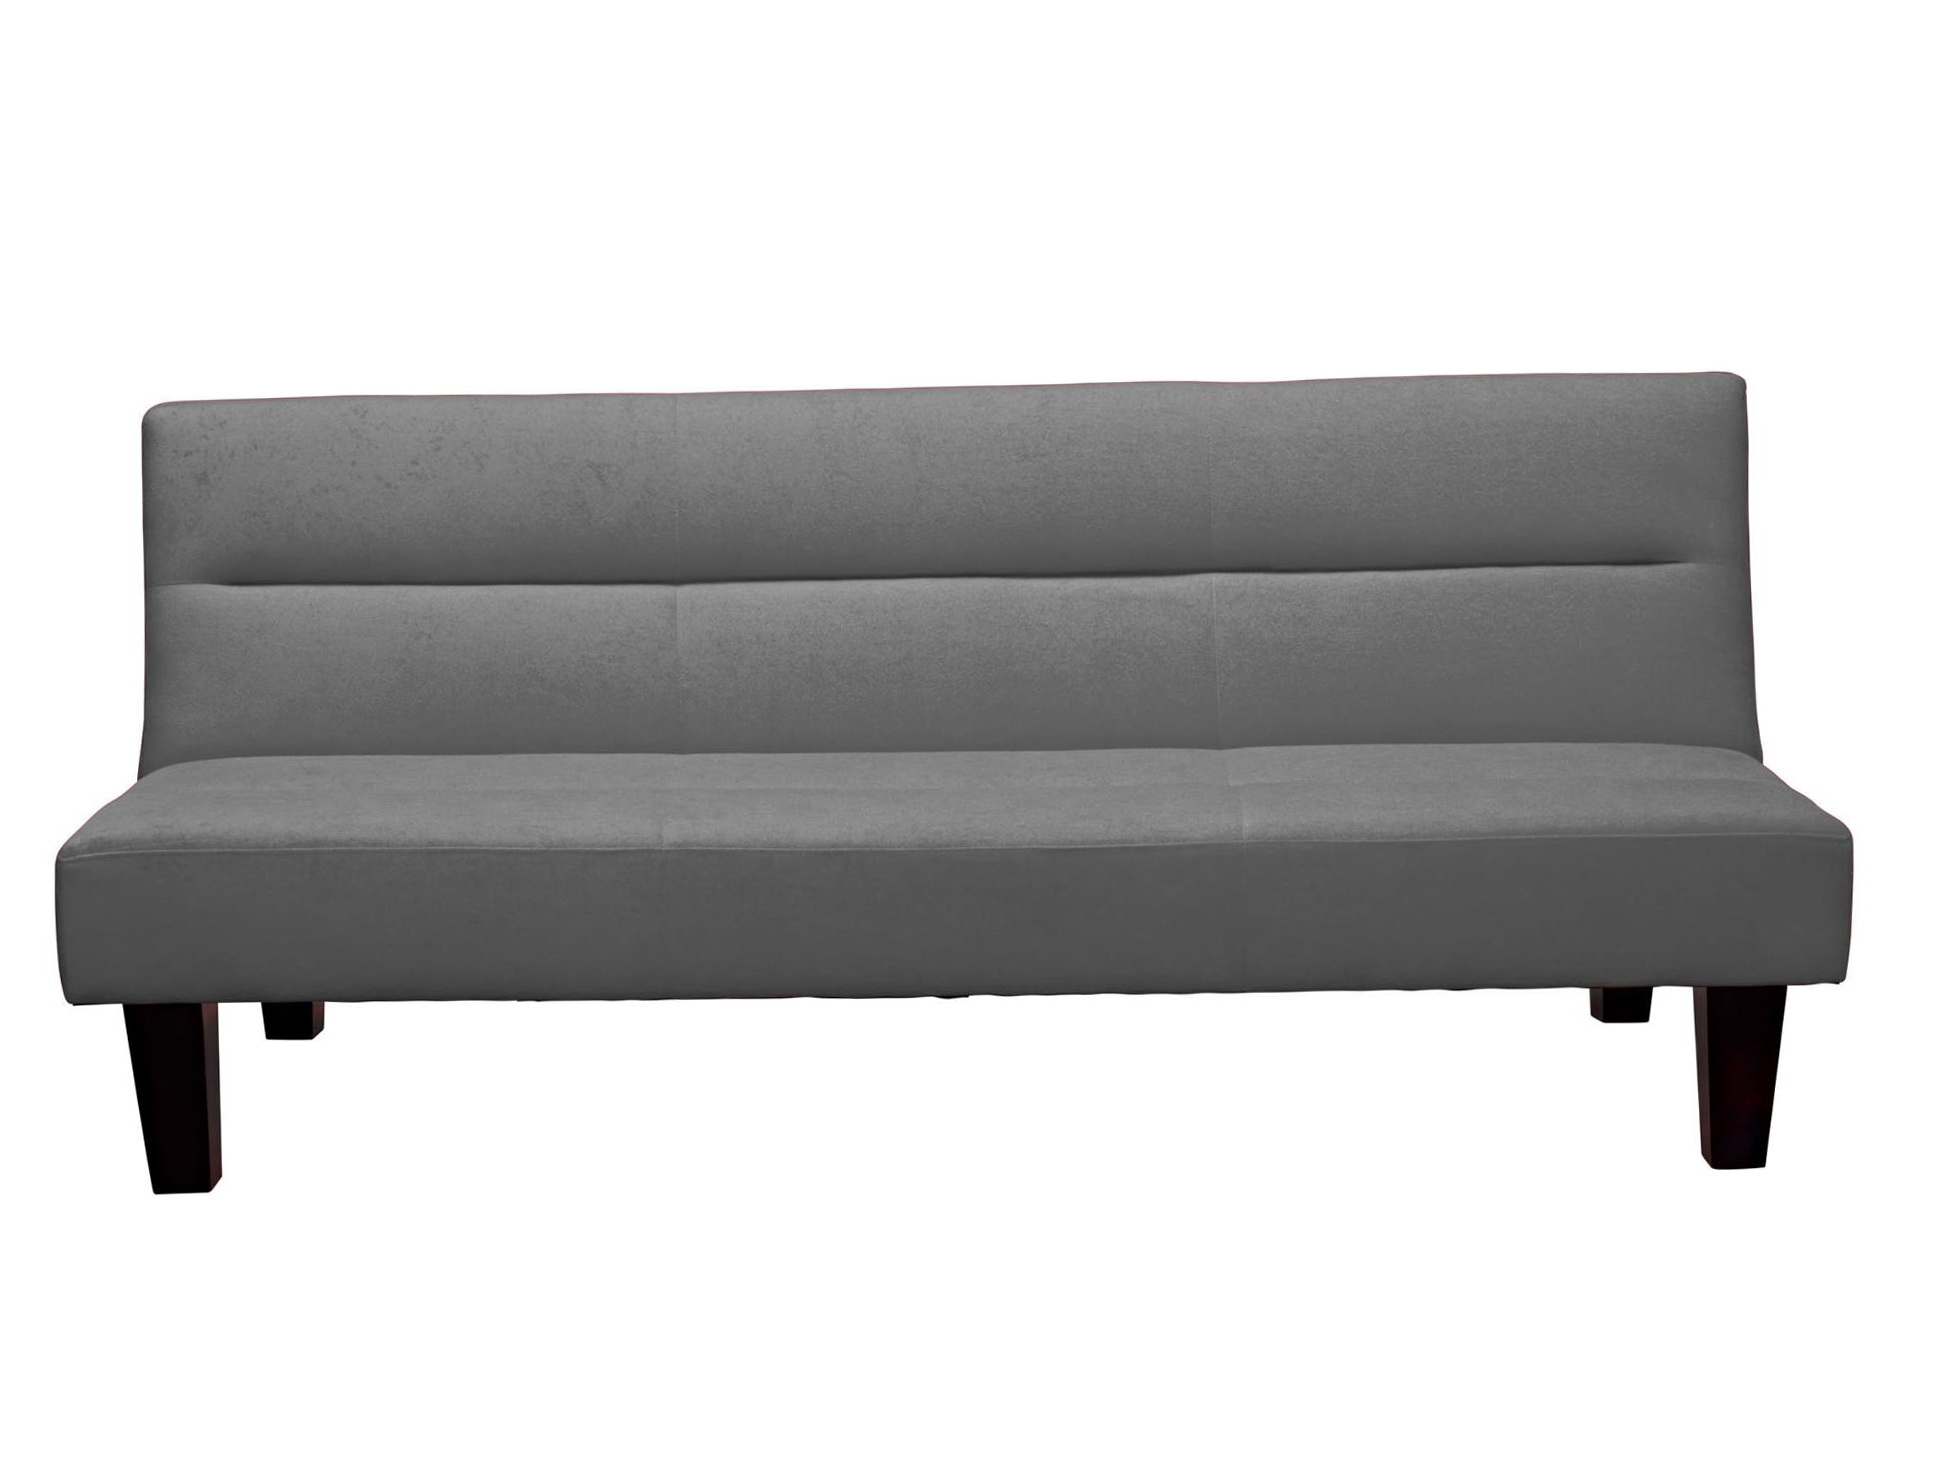 Kebo Futon Sofa Bed Cover